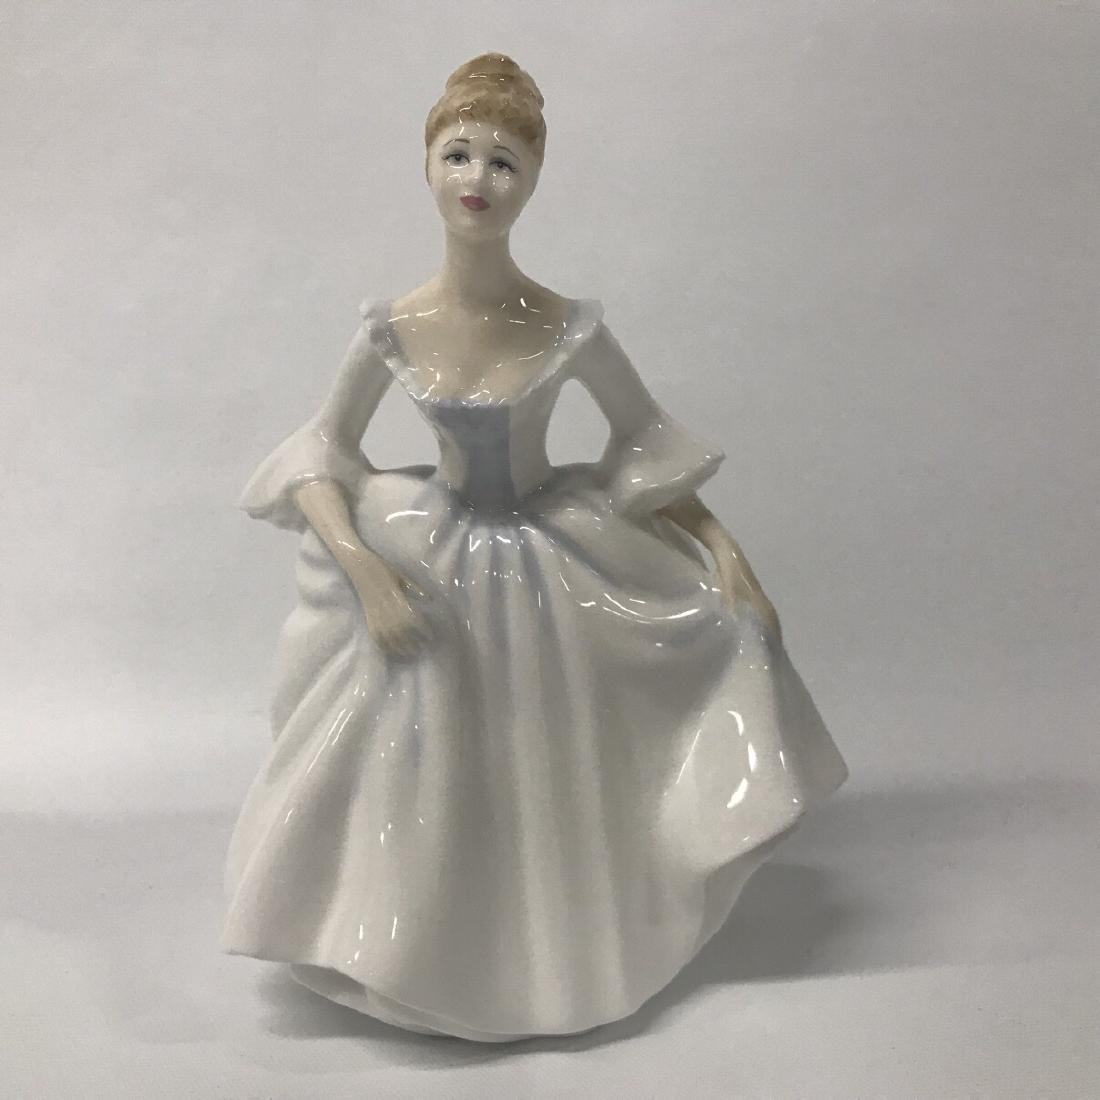 Alyssa Royal Doulton Figurine